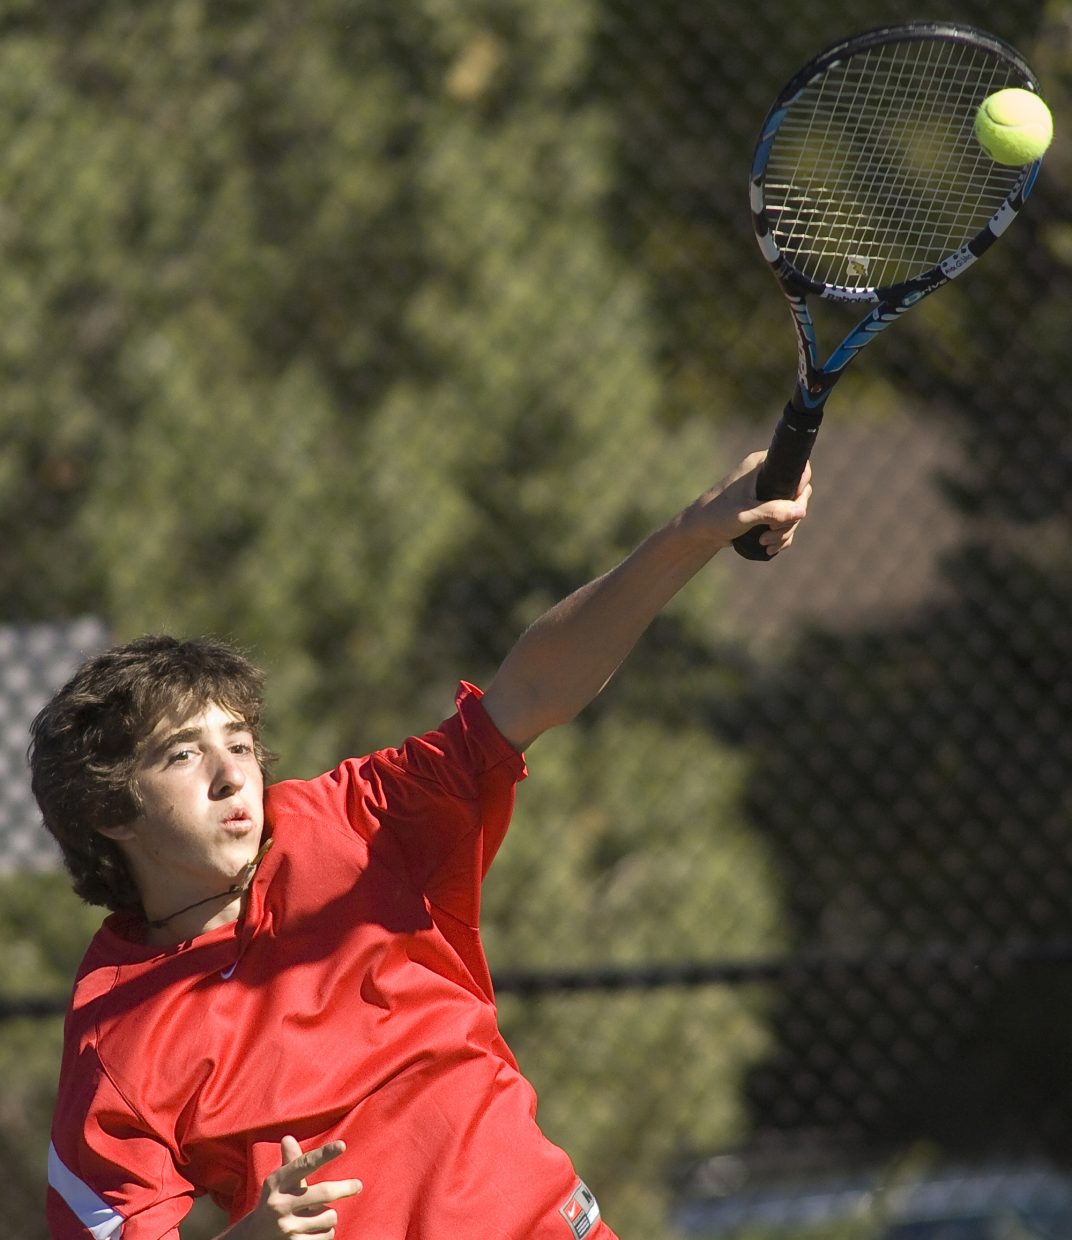 Steamboat Springs' Alex Gibbs smashes the ball in a match against Fountain Valley during Friday's state high school tennis championships.